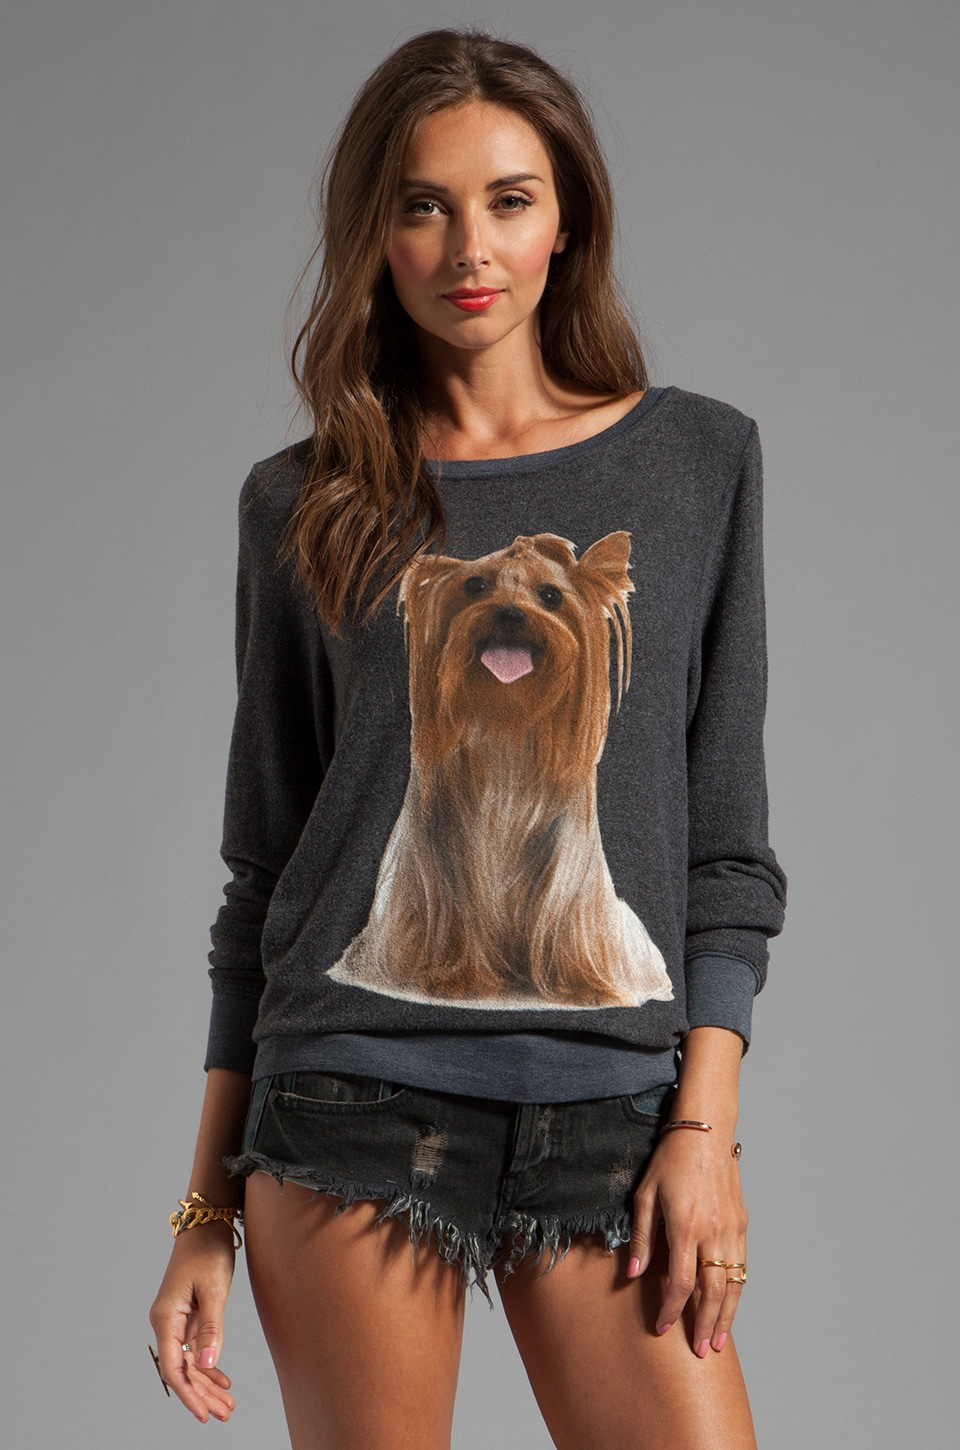 Wildfox Couture Granny's Dog Baggy Beach Jersey in Dirty Black